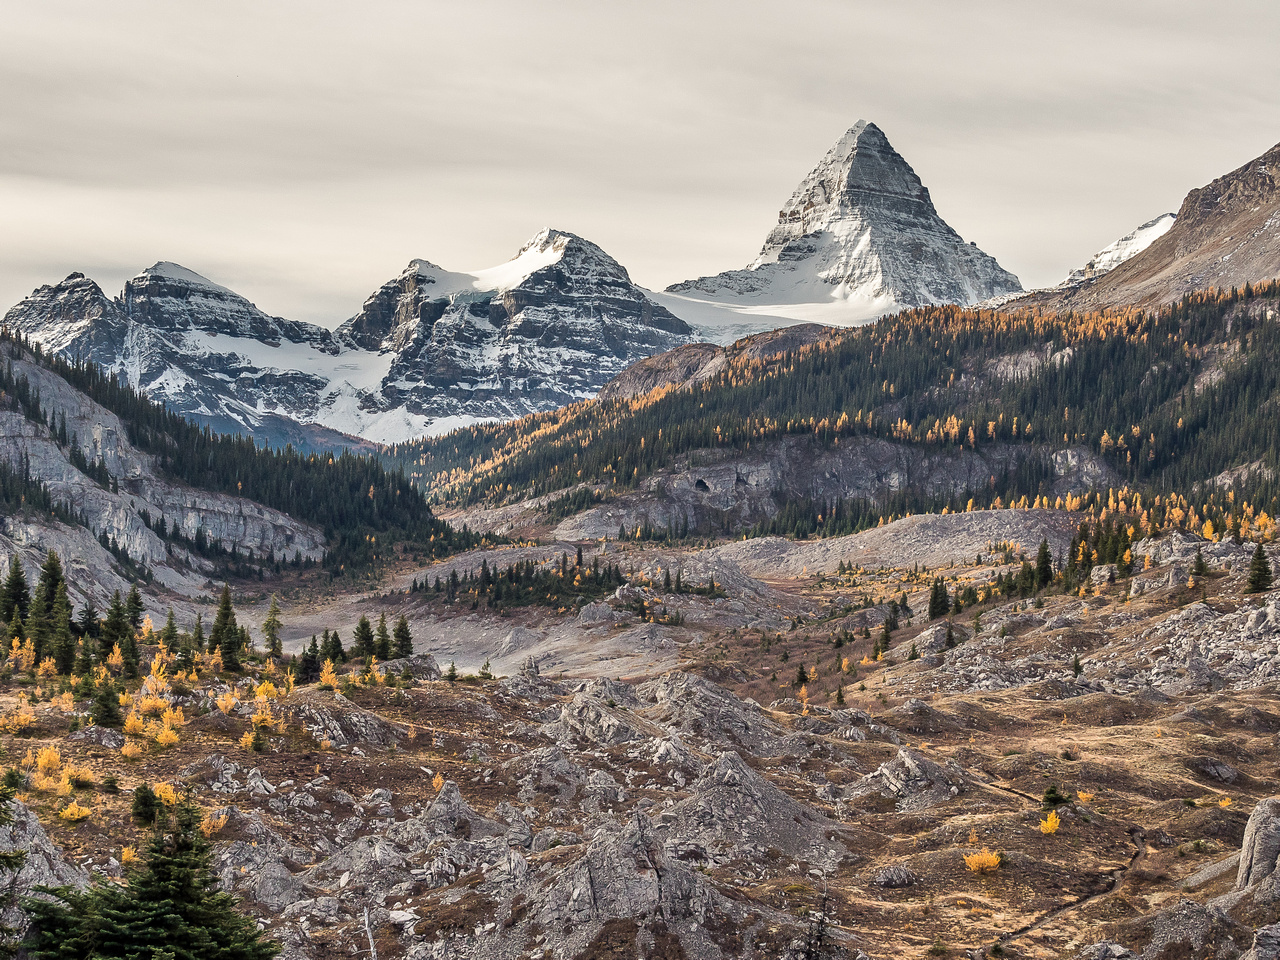 A wonderful view over the Valley of the Rocks back towards the mighty Mount Assiniboine.